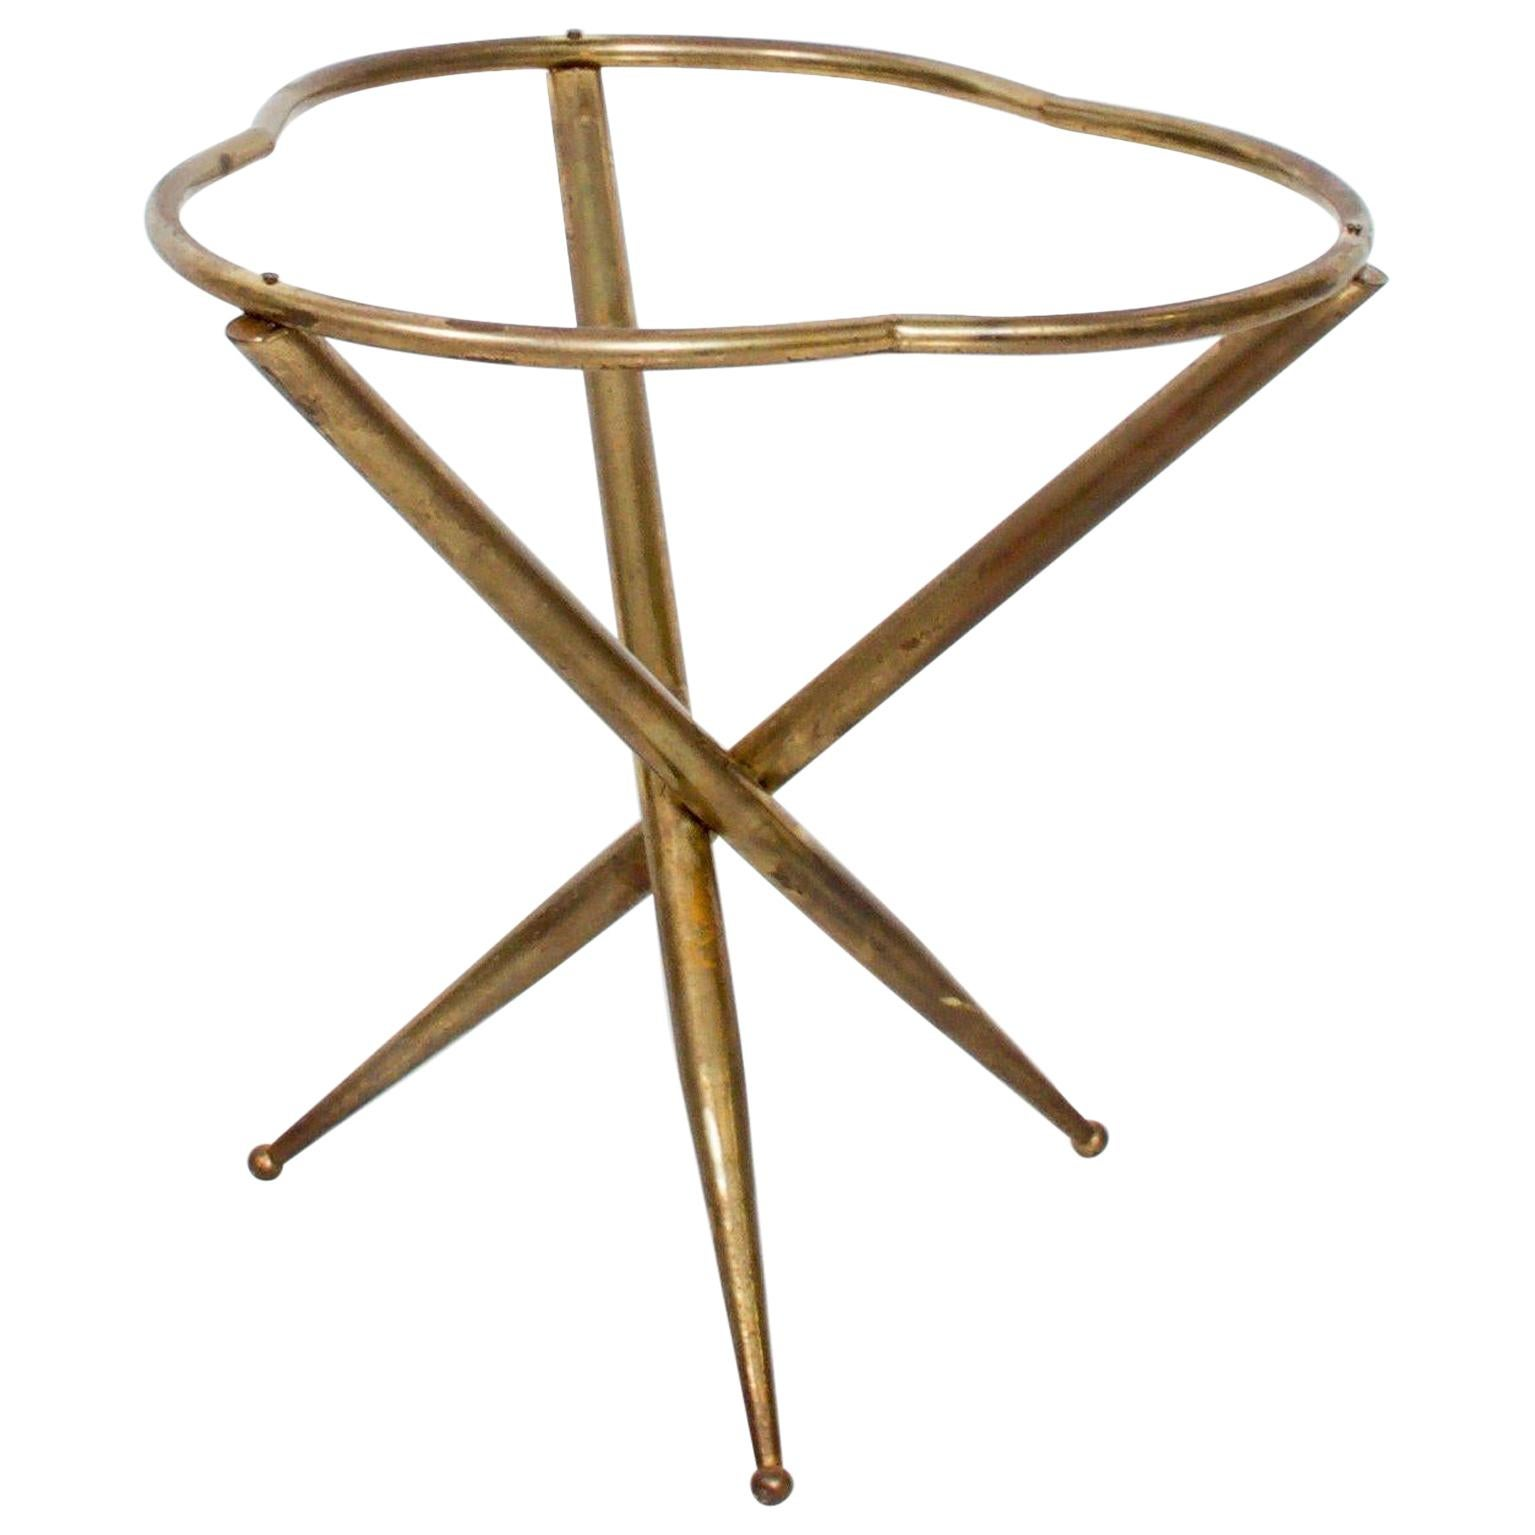 Italian Sculptural Side Tripod Table in Patinated Bronze 1950s Style Gio Ponti